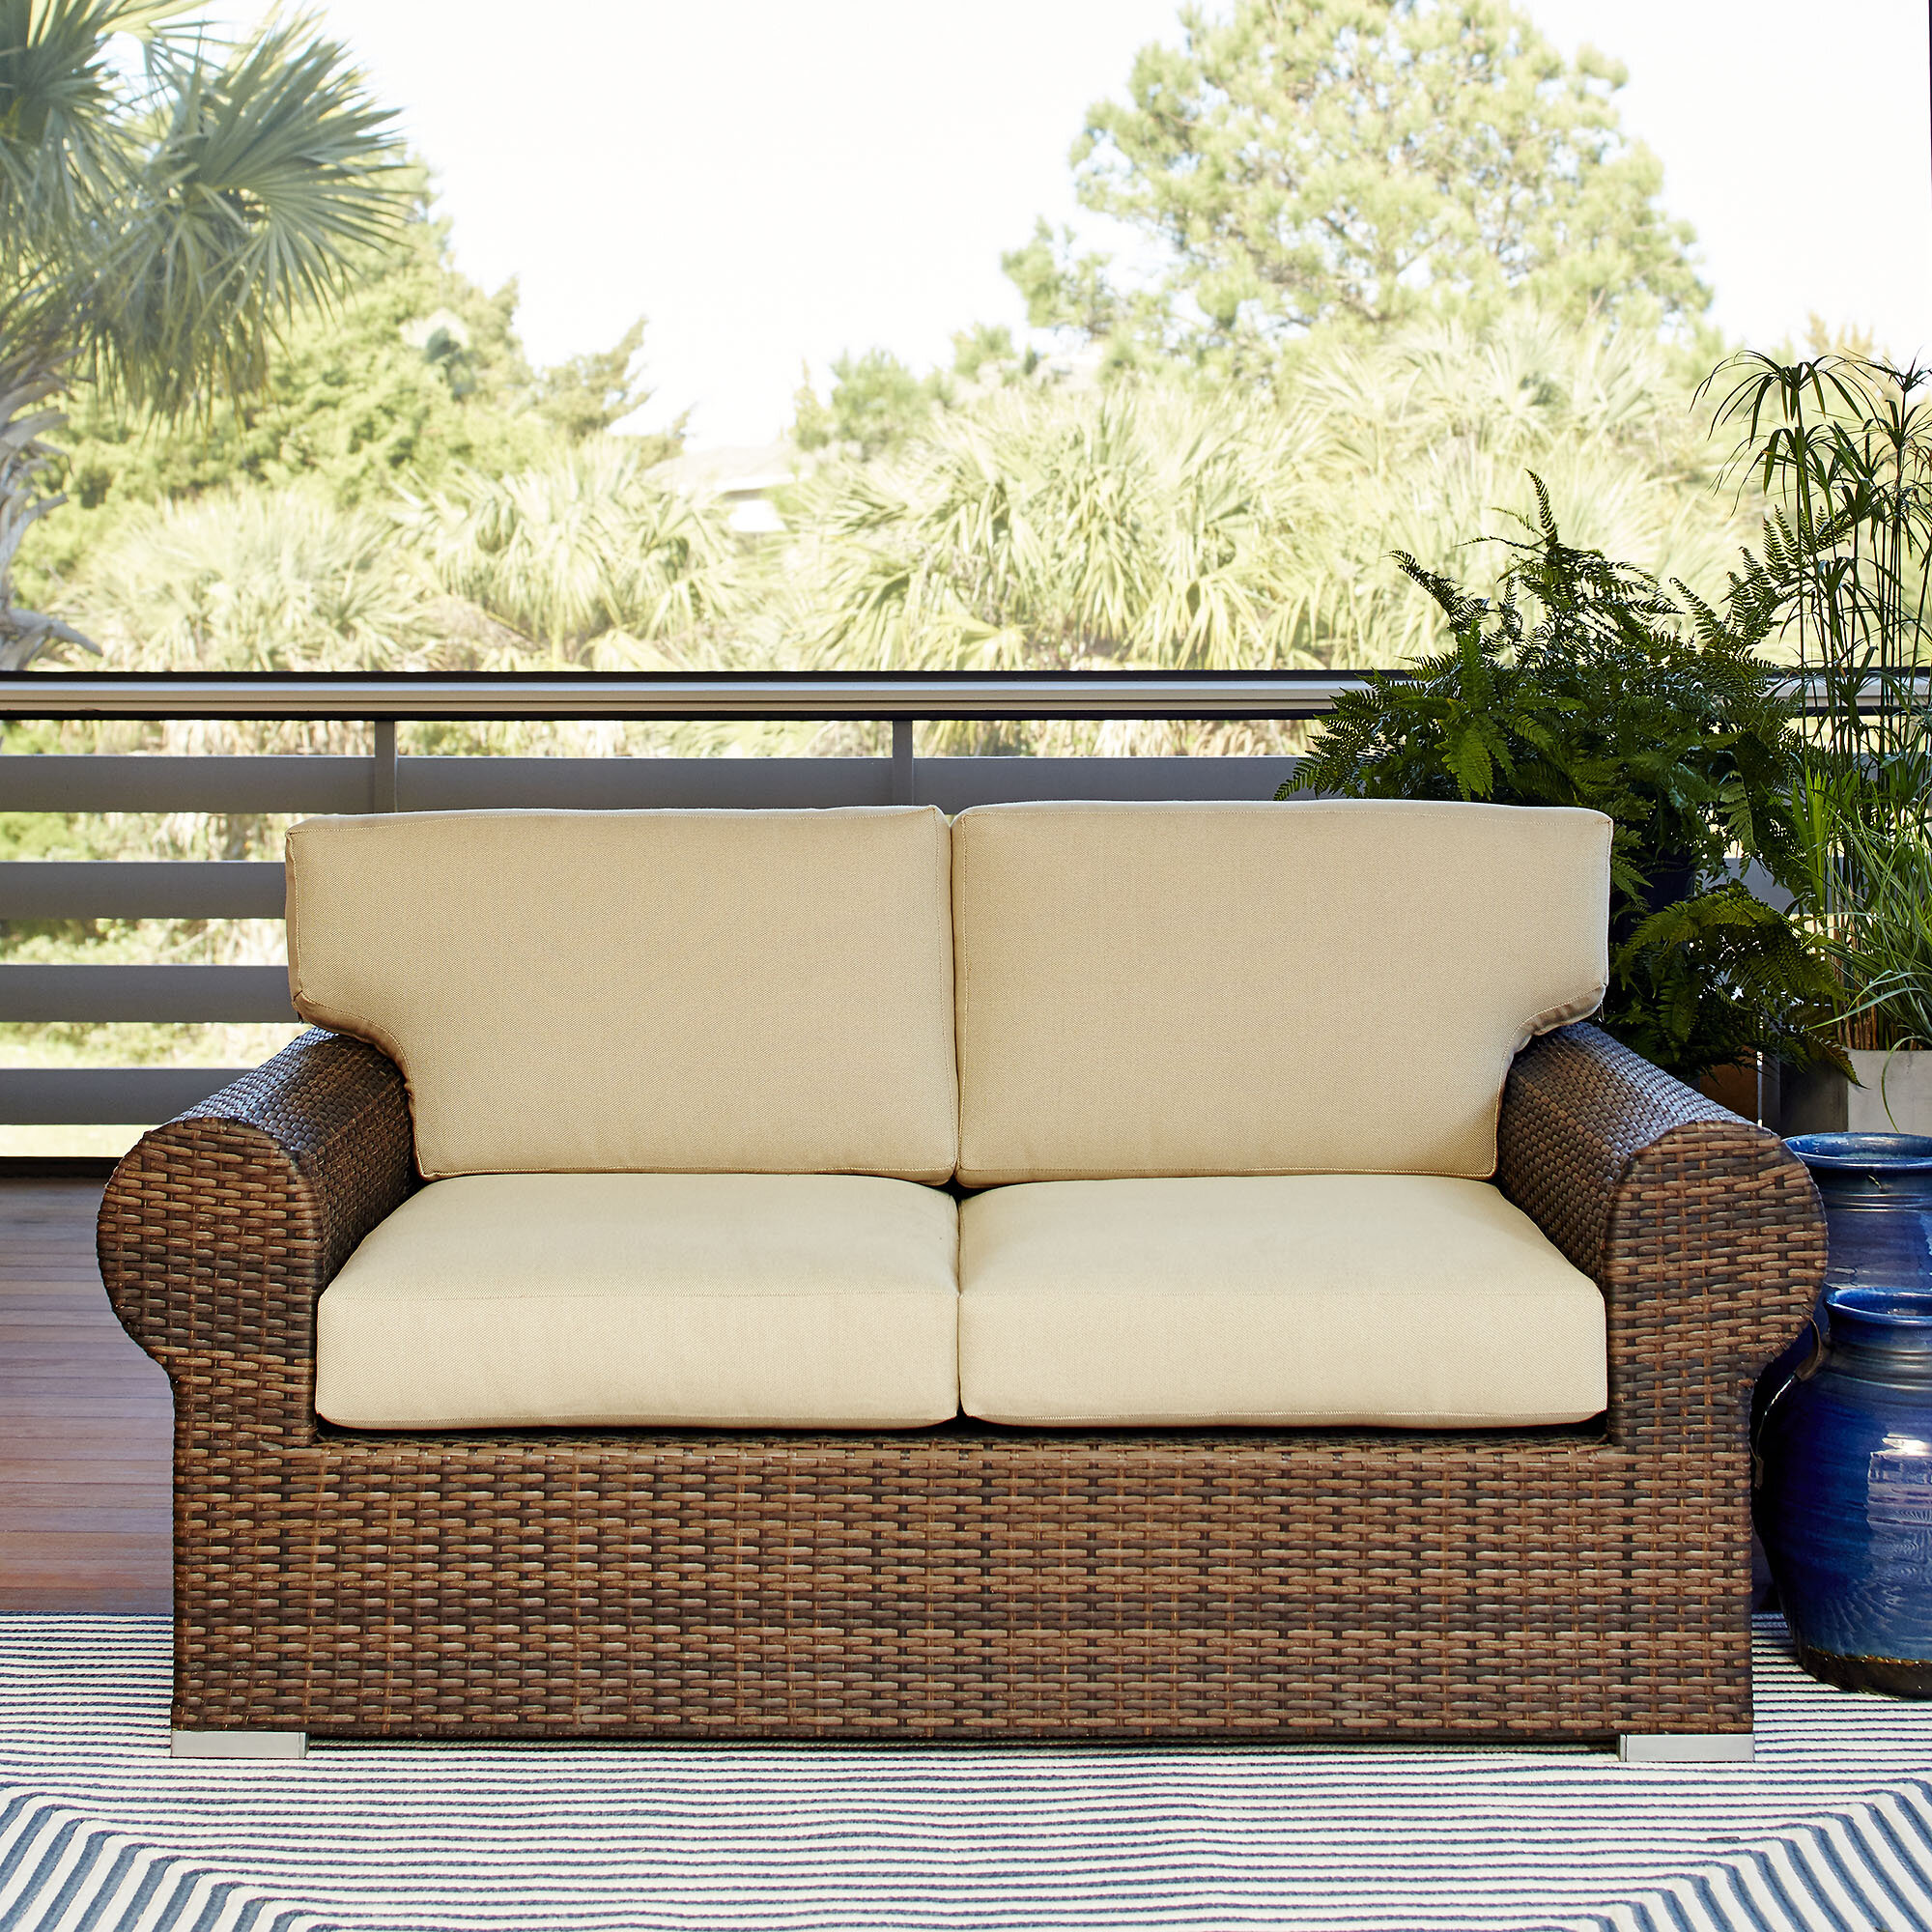 p with patio blue haven brown bay all loveseat wicker cushions sky hampton weather spring loveseats outdoor